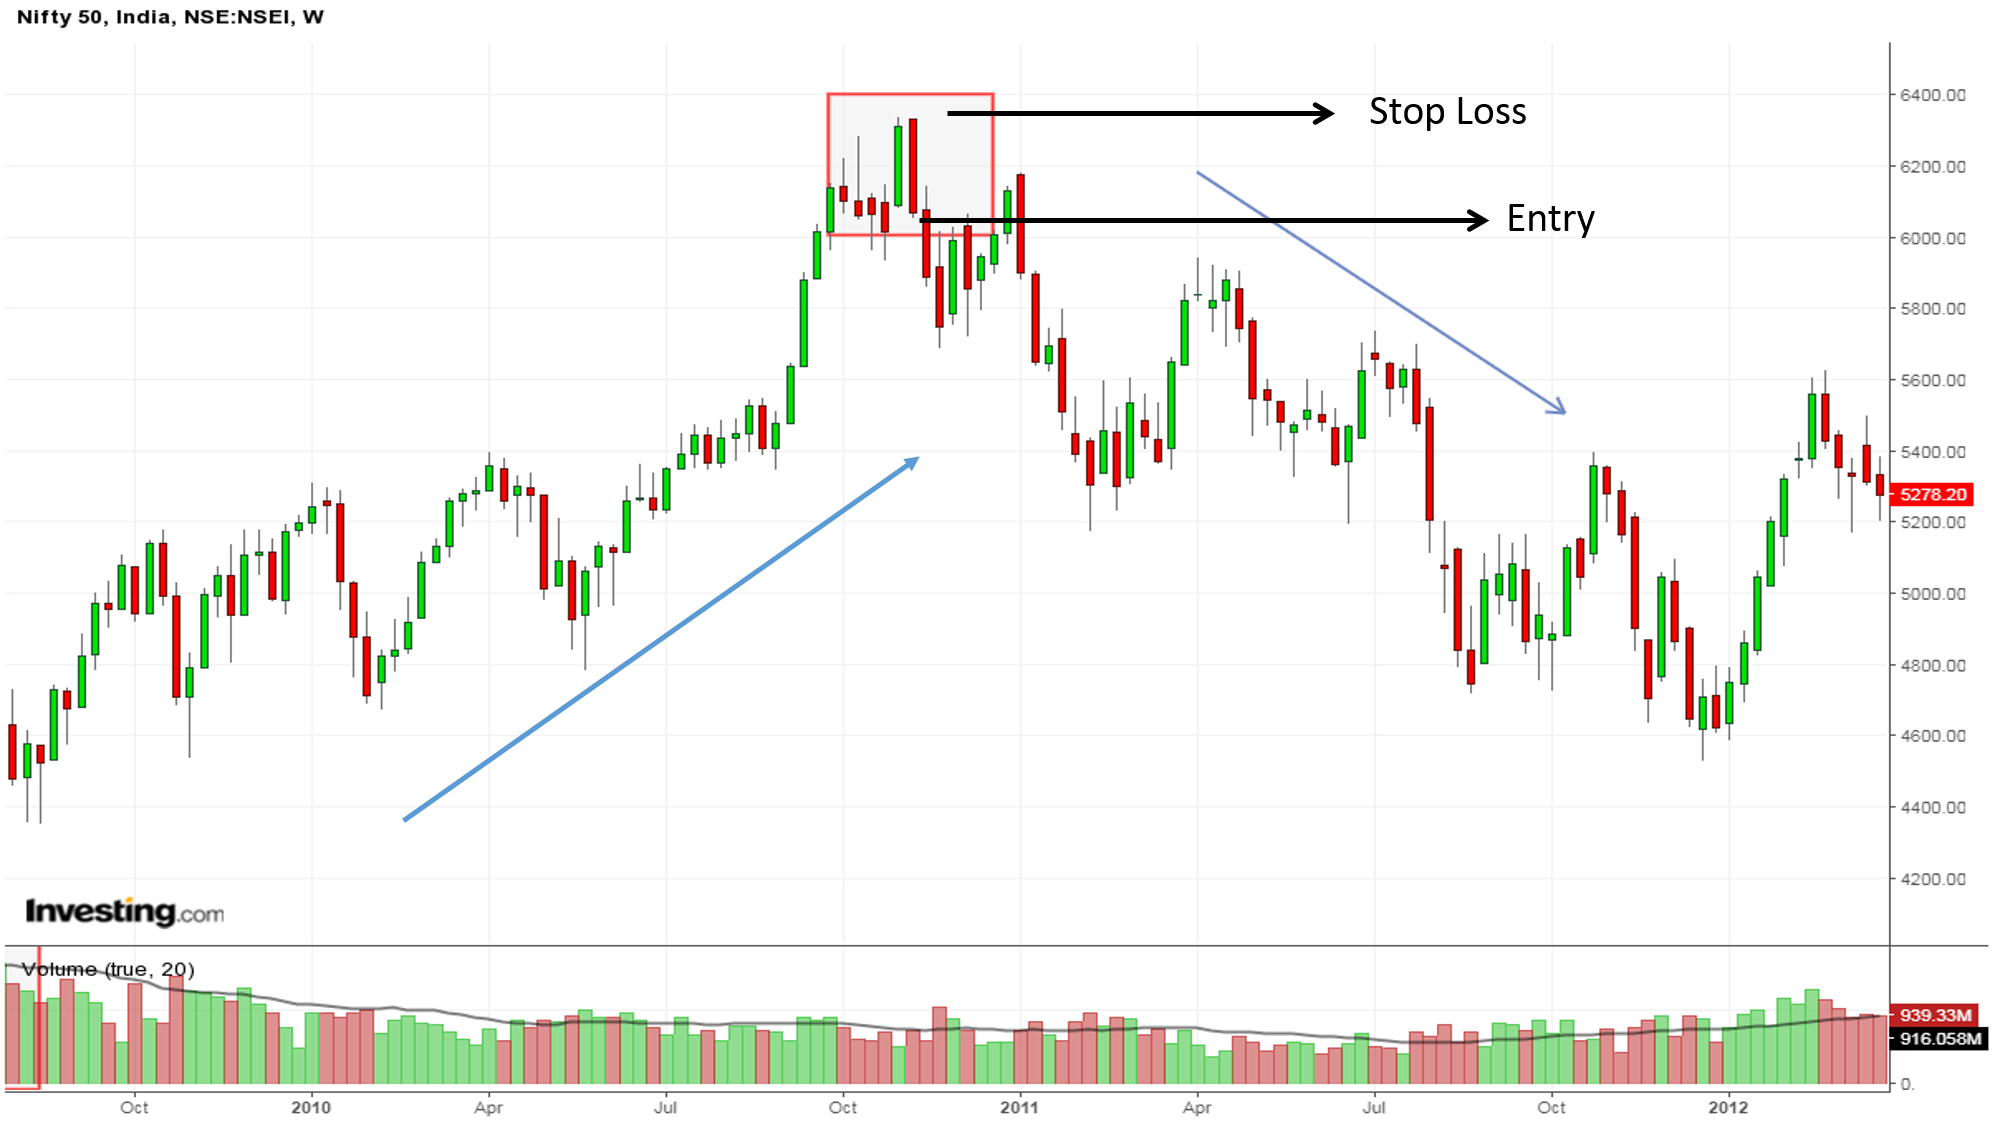 Nifty pipe bottom